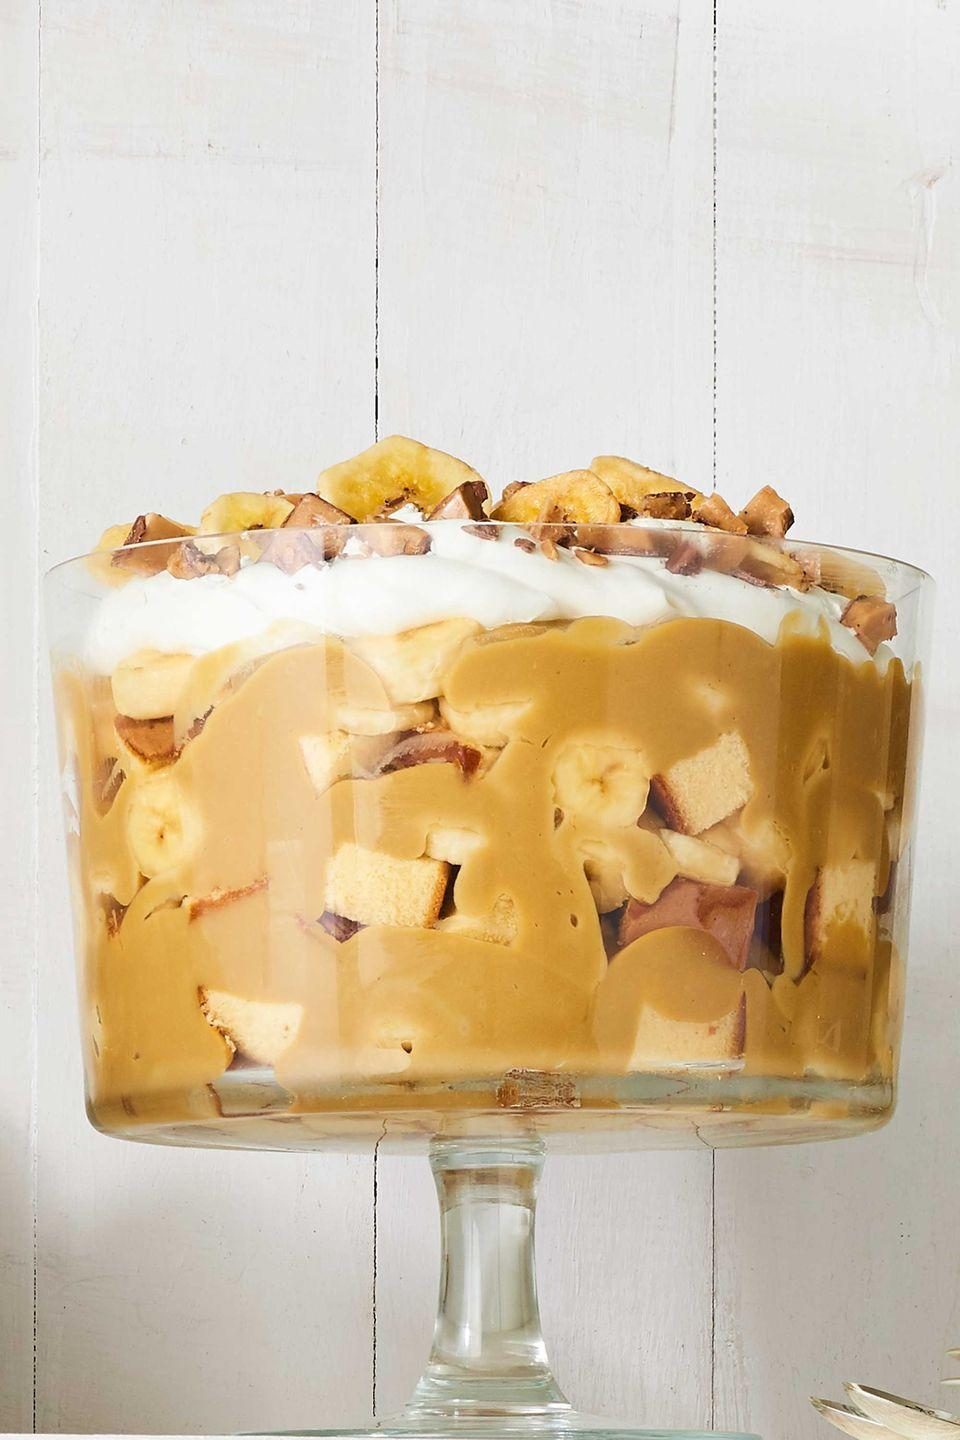 """<p>We can't imagine anything better than a holiday dessert layered with fresh bananas and pound cake. </p><p><strong><a href=""""https://www.countryliving.com/food-drinks/recipes/a40033/butterscotch-banana-trifle-recipe/"""" rel=""""nofollow noopener"""" target=""""_blank"""" data-ylk=""""slk:Get the recipe"""" class=""""link rapid-noclick-resp"""">Get the recipe</a>.</strong> </p>"""